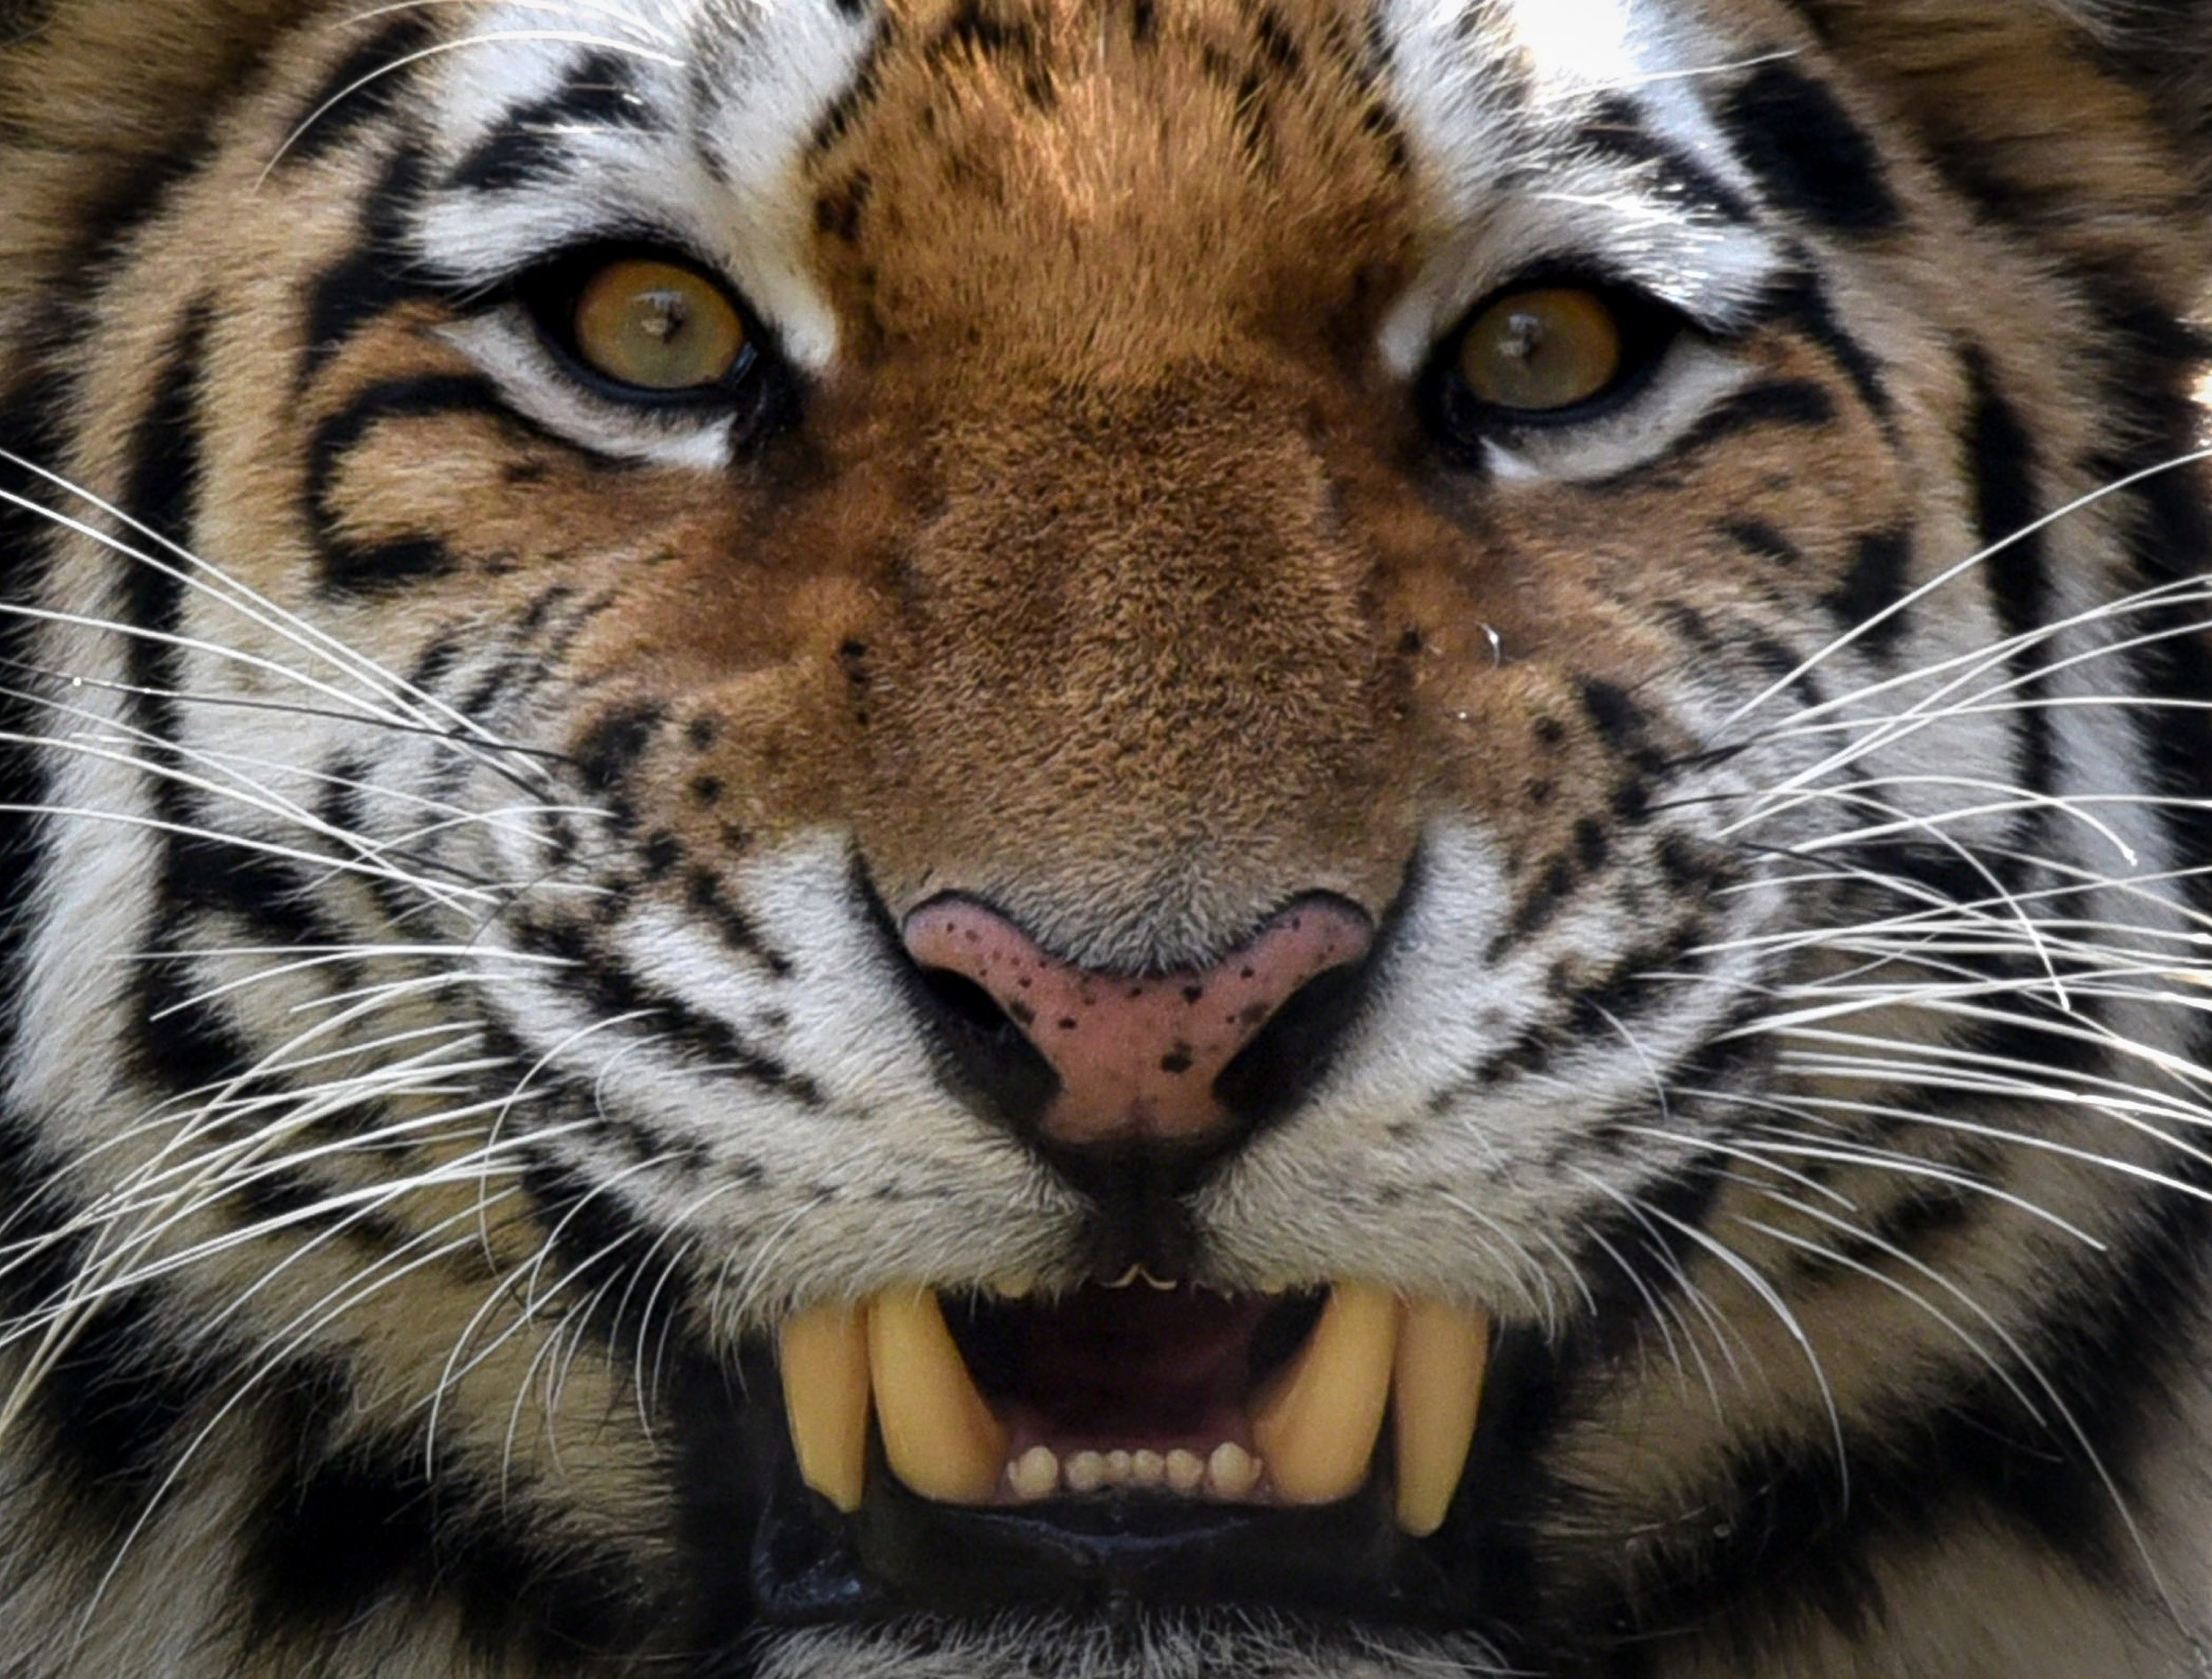 Watch: Ferocious Fight Between Tiger and Bear Caught on Video